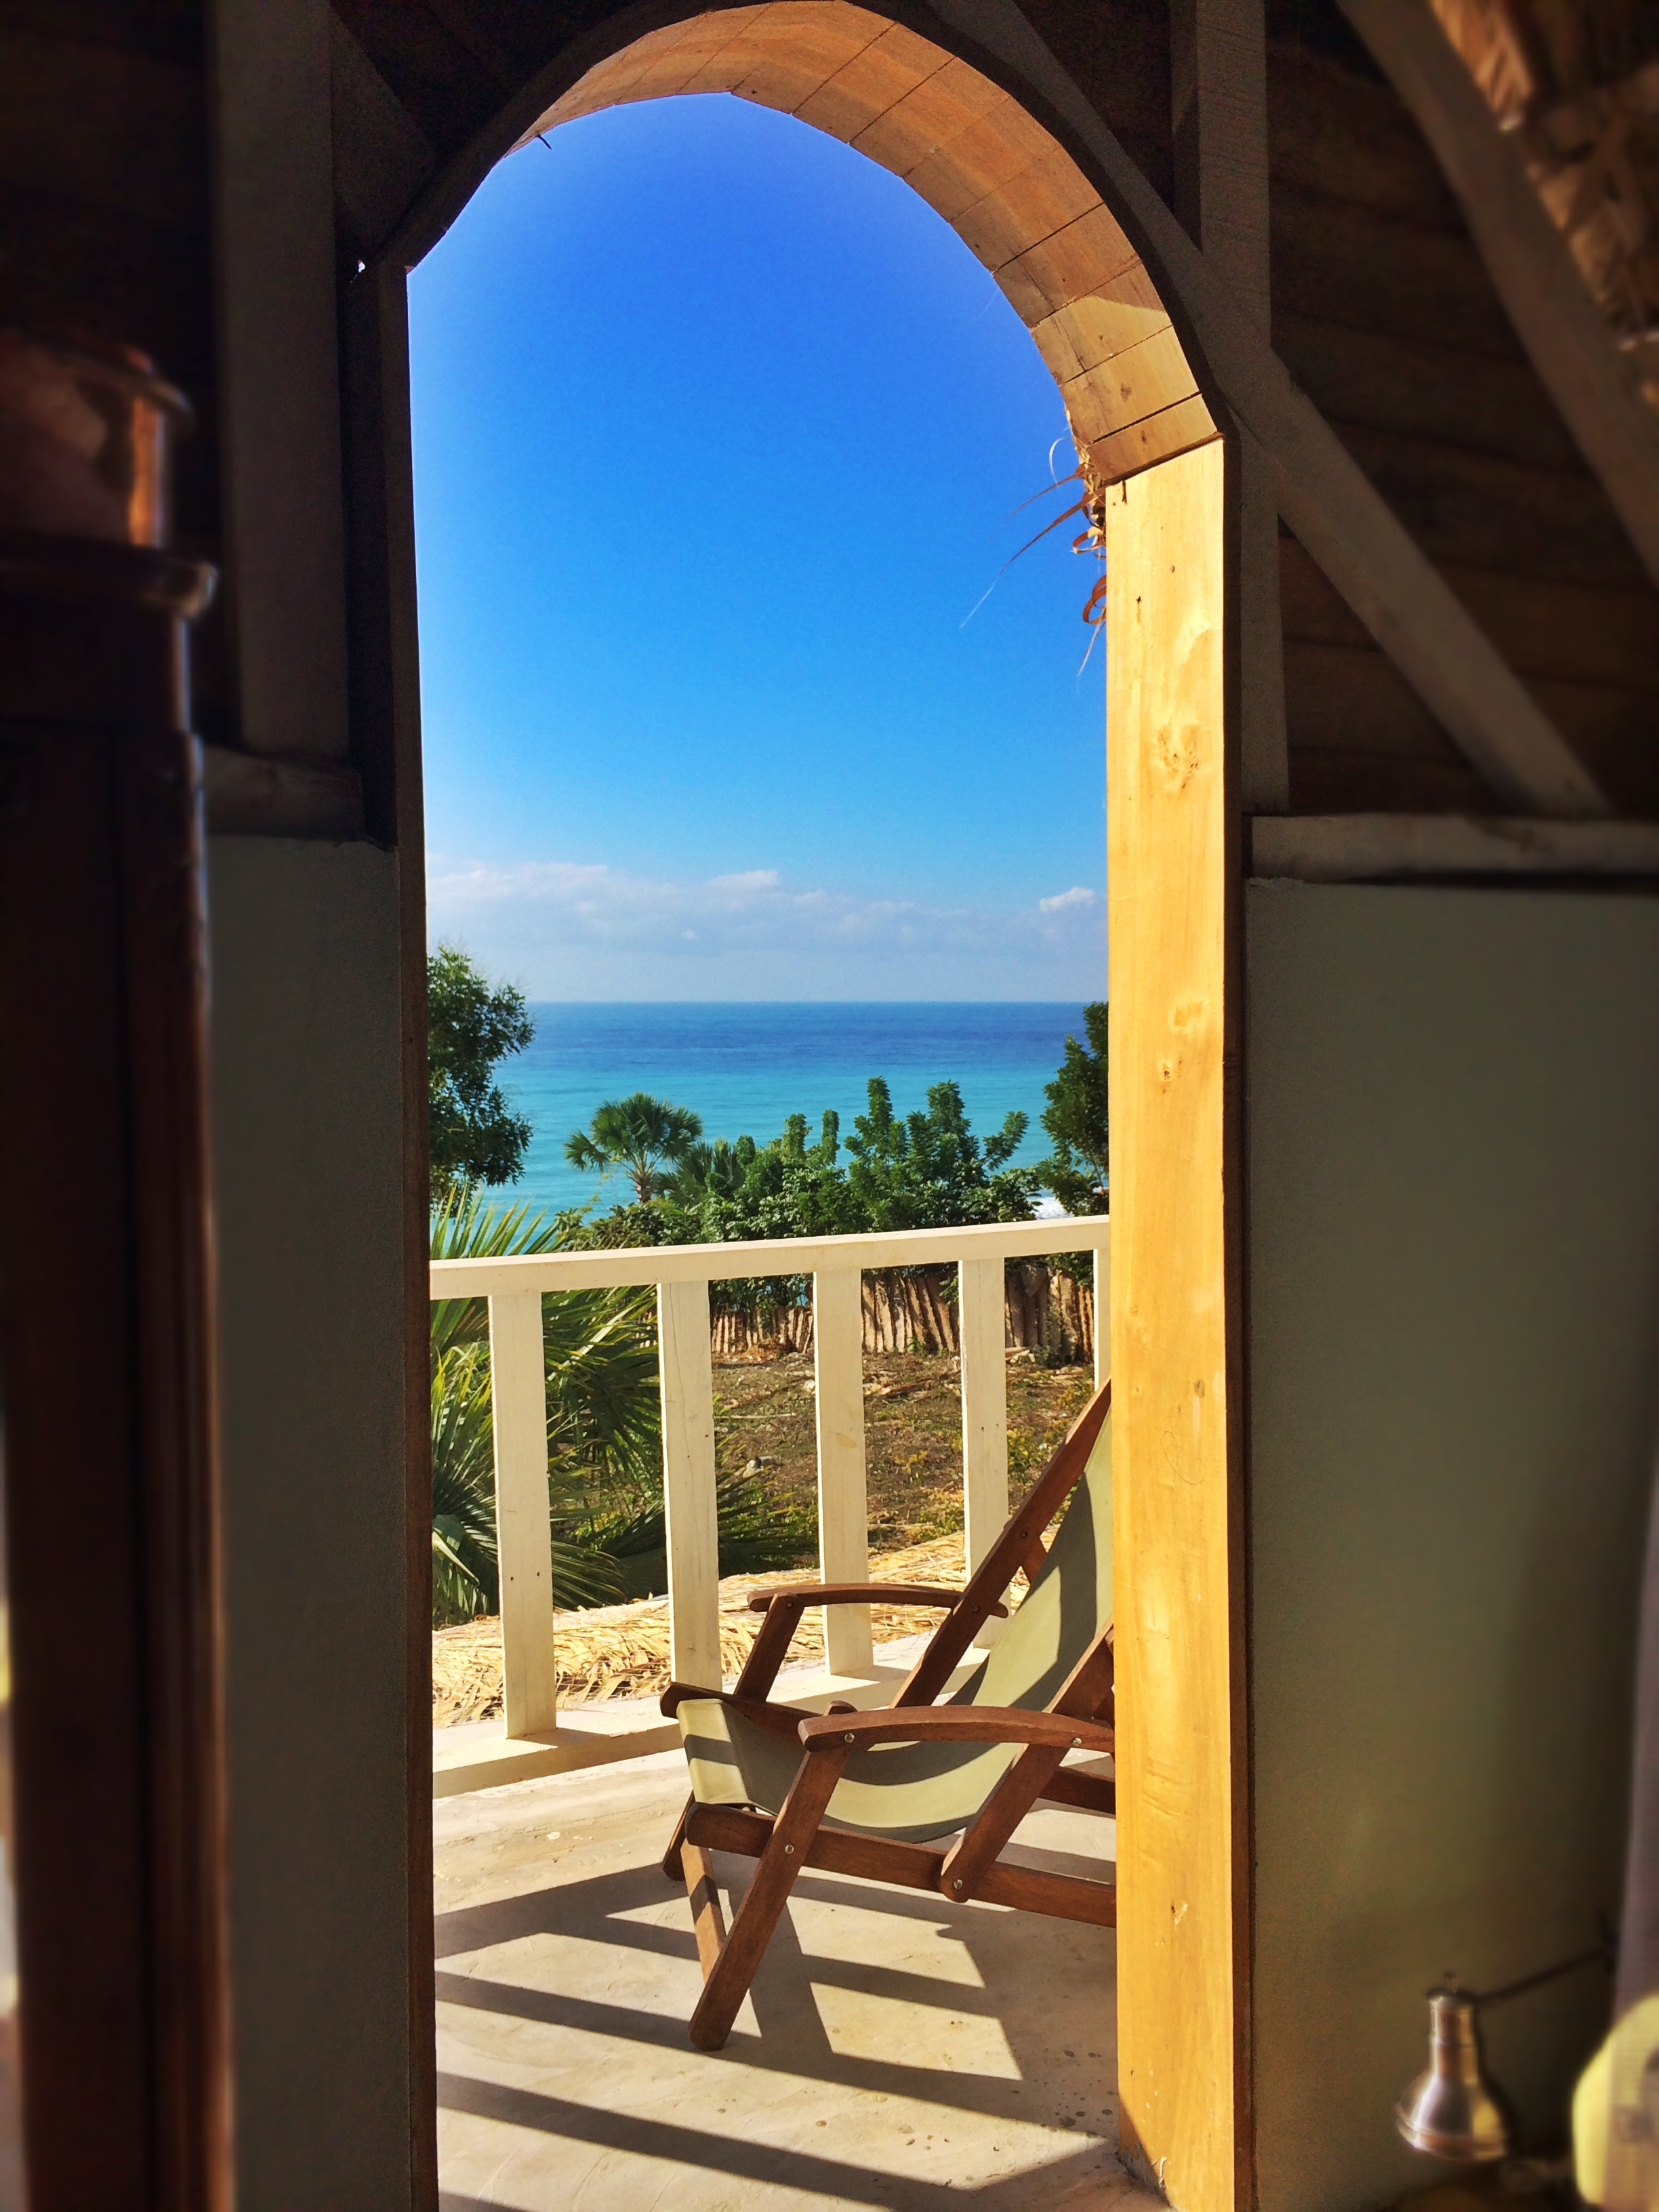 Sea view from Chic Chateau's Master Suite